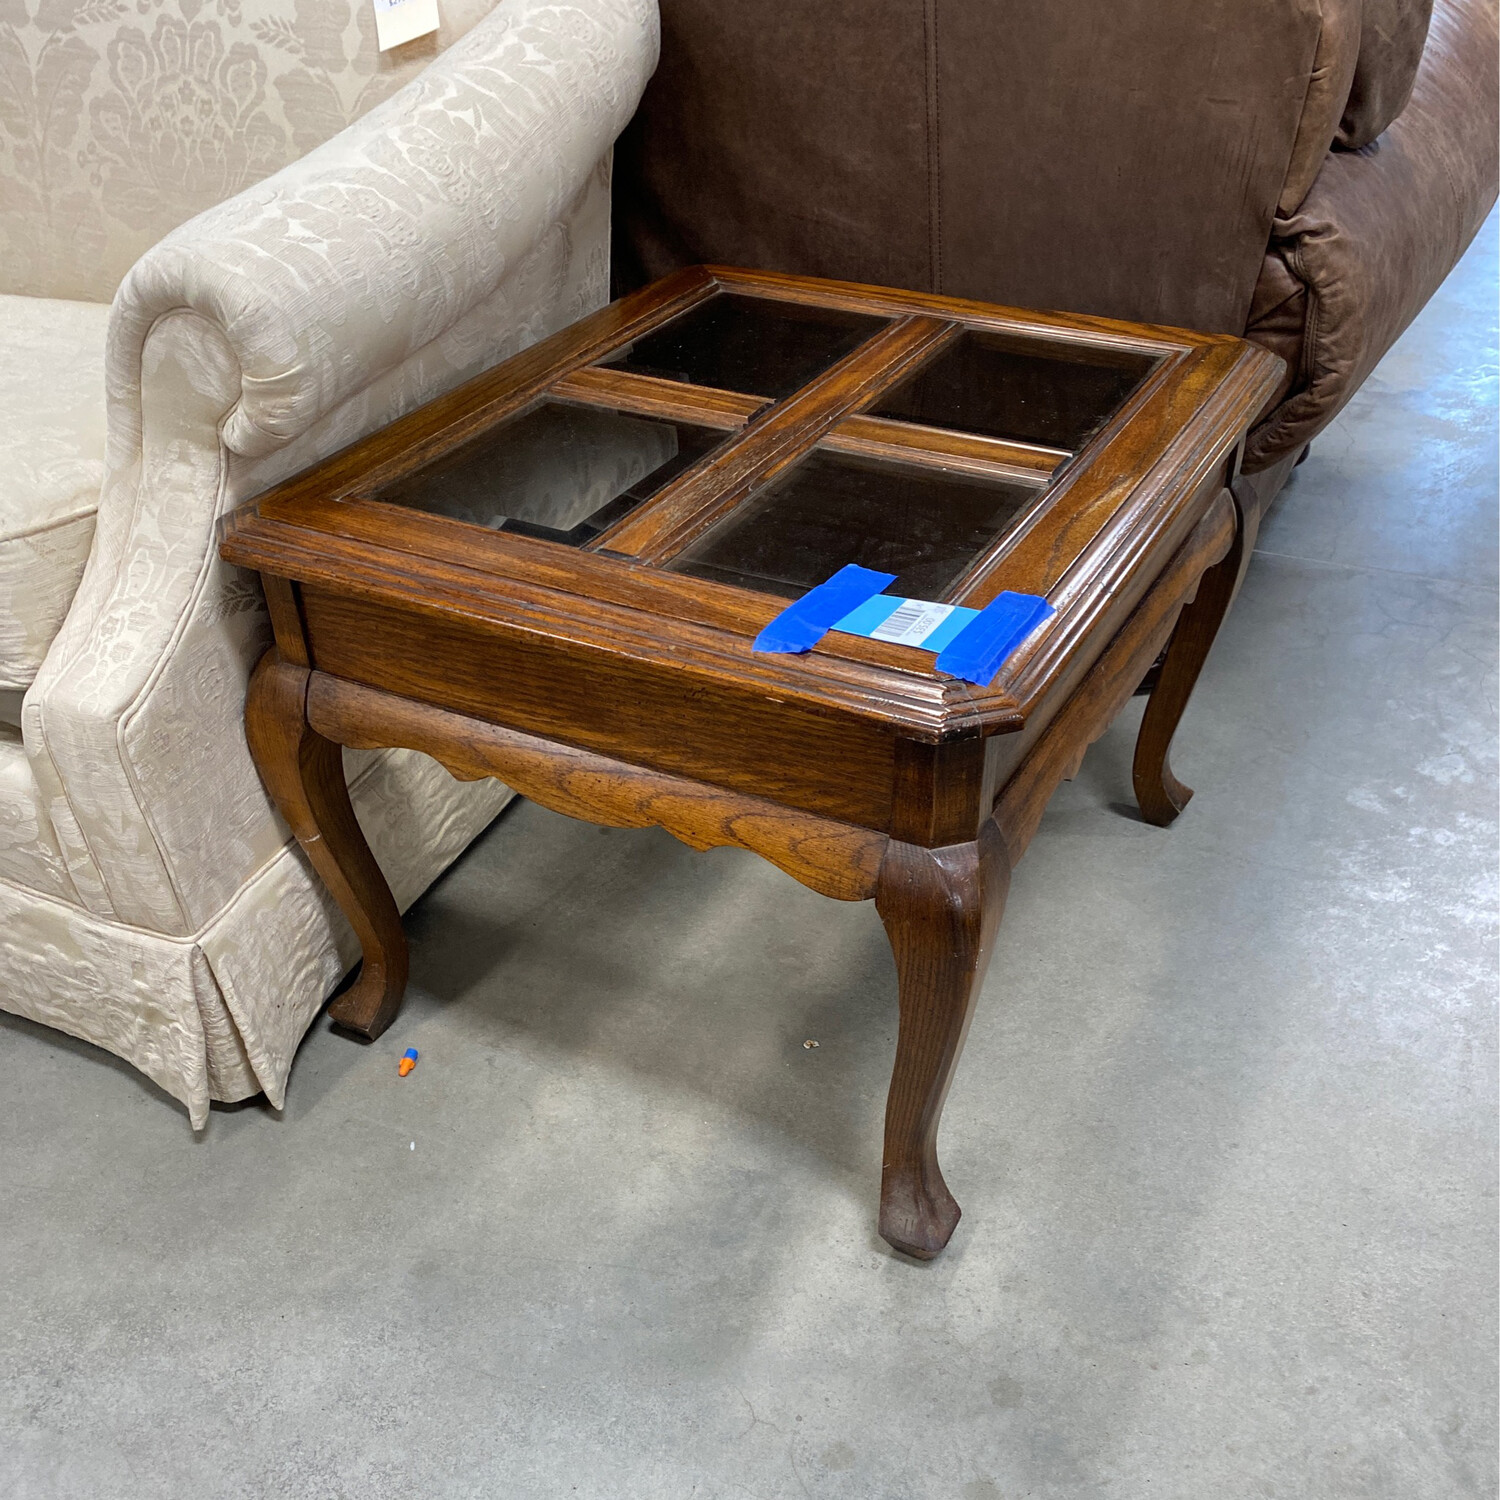 SIDE TABLE/4 GLASS INSERTS